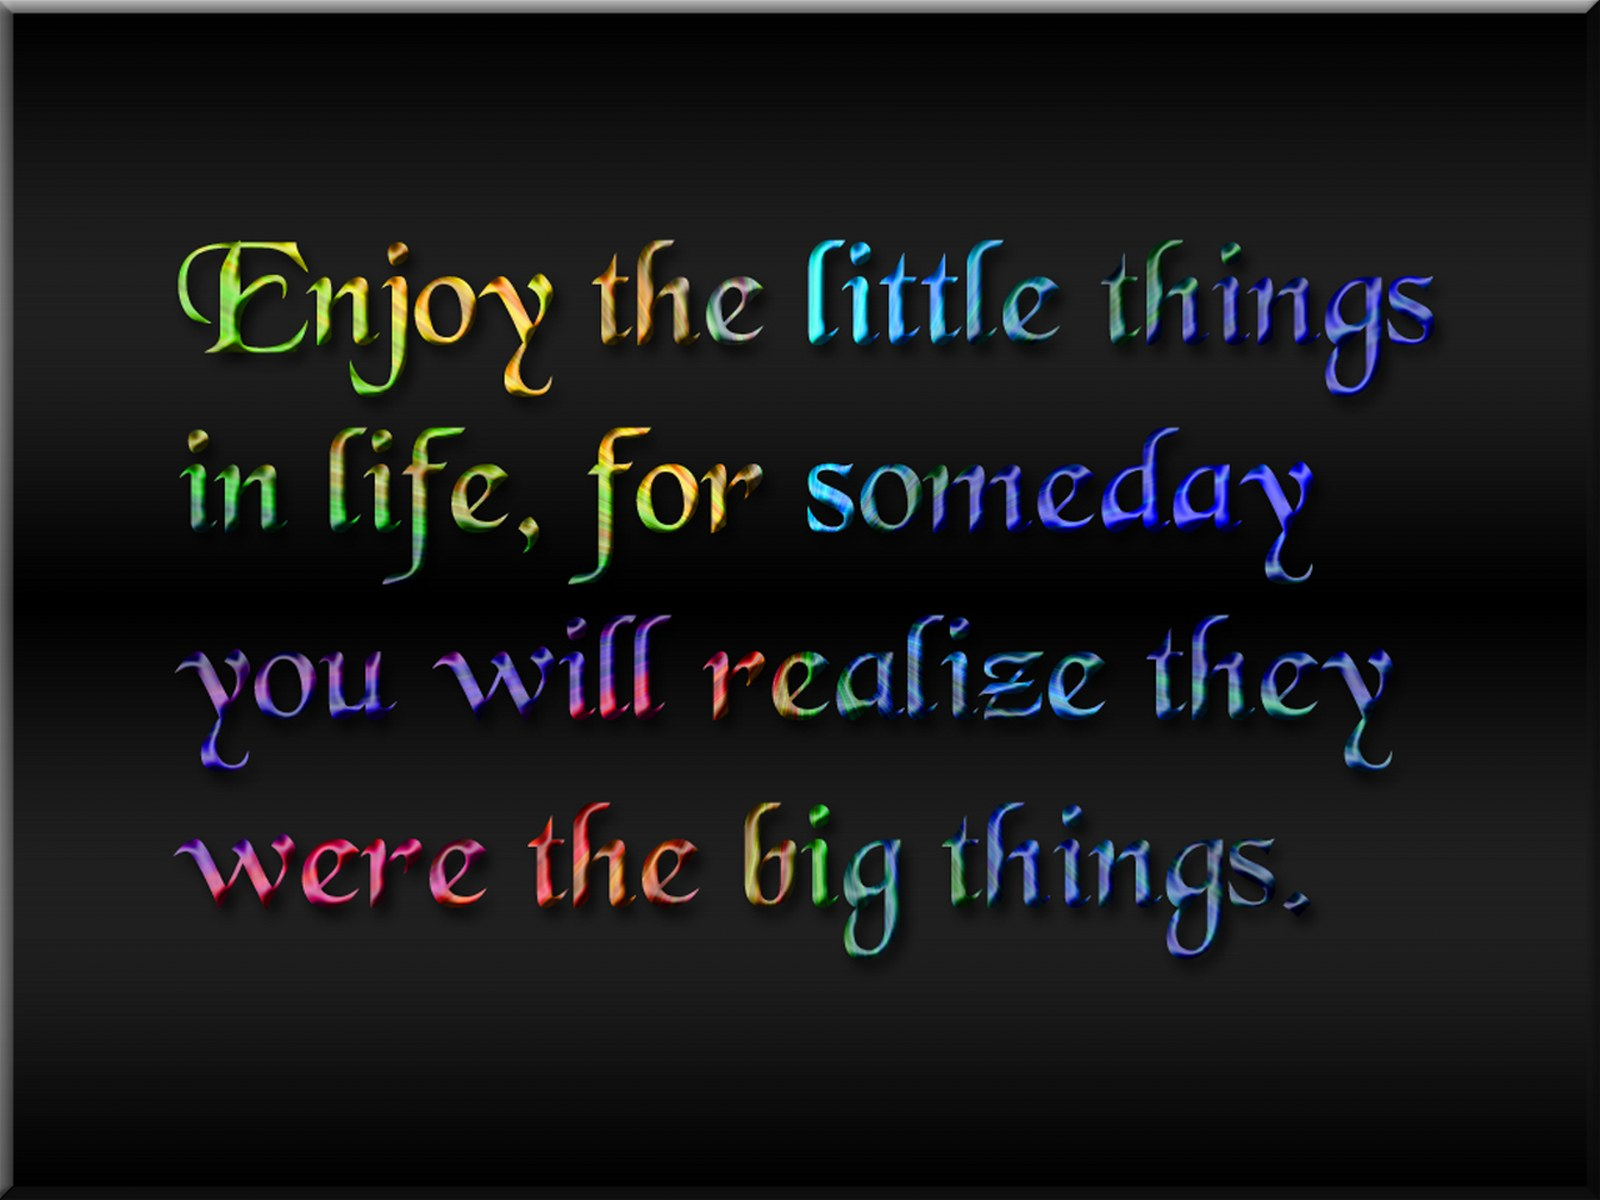 Life Quote Free Hd Wallpapers For Desktop Hd Wallpaper